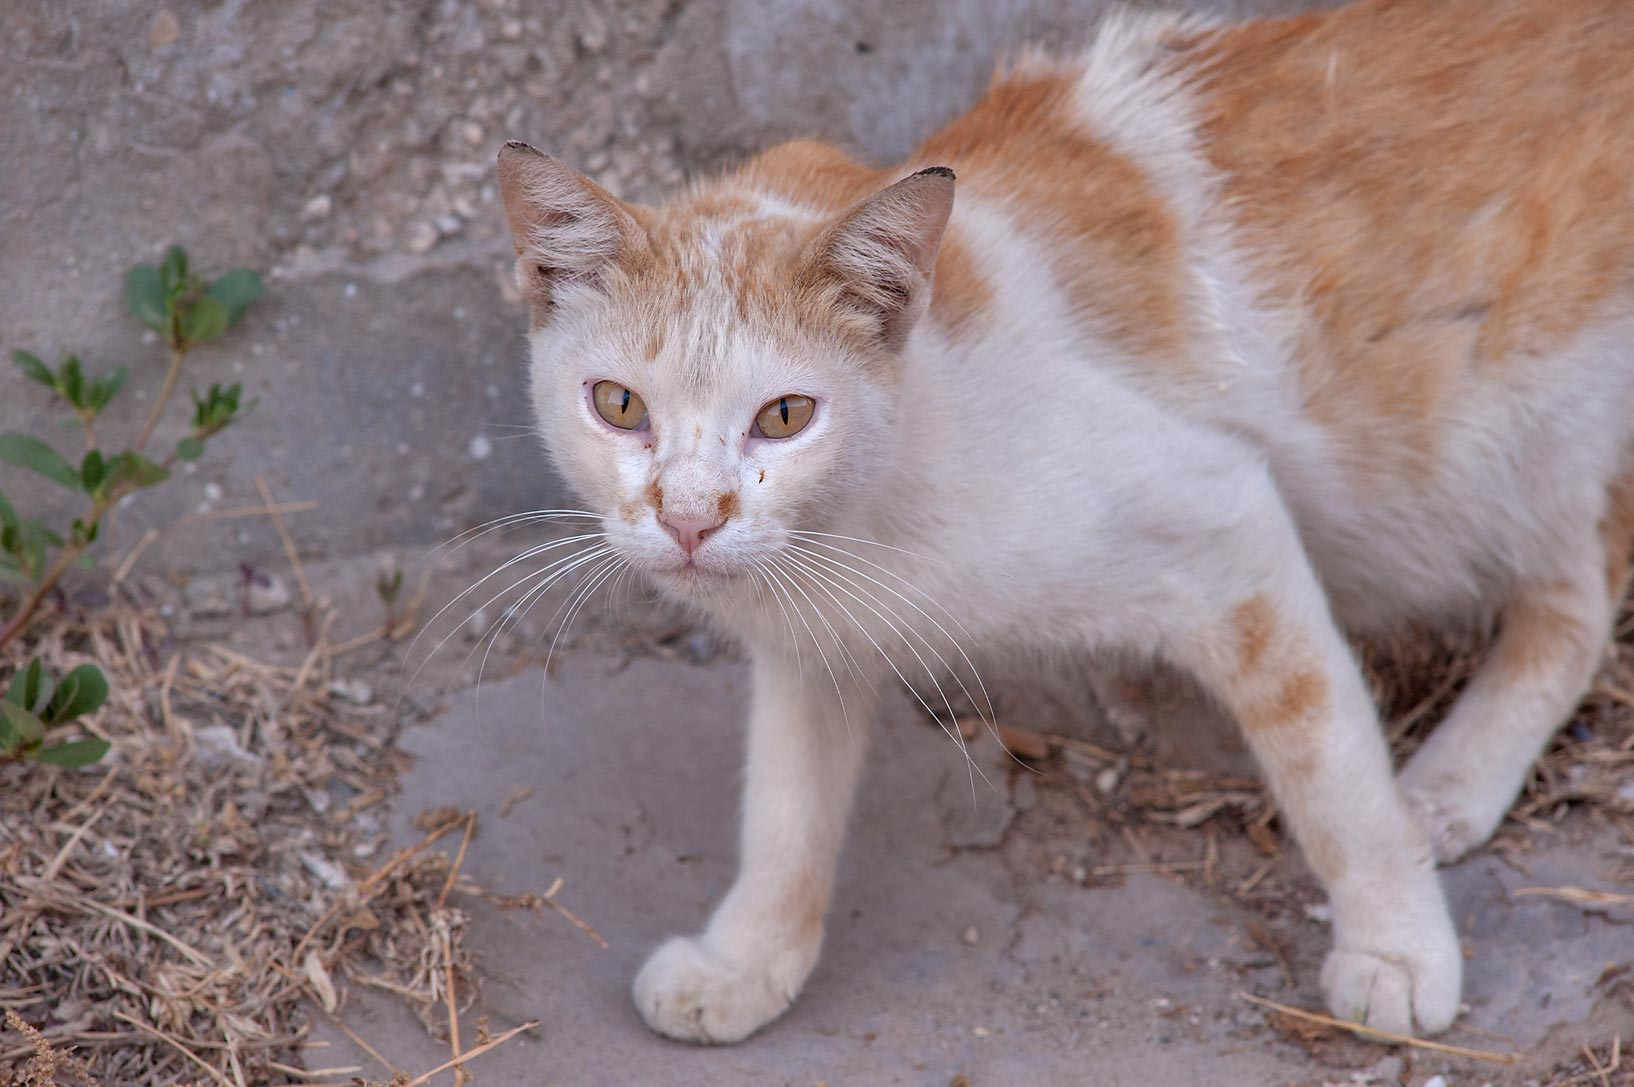 White and brown cat on Umm Wishad St. in Musheirib area. Doha, Qatar